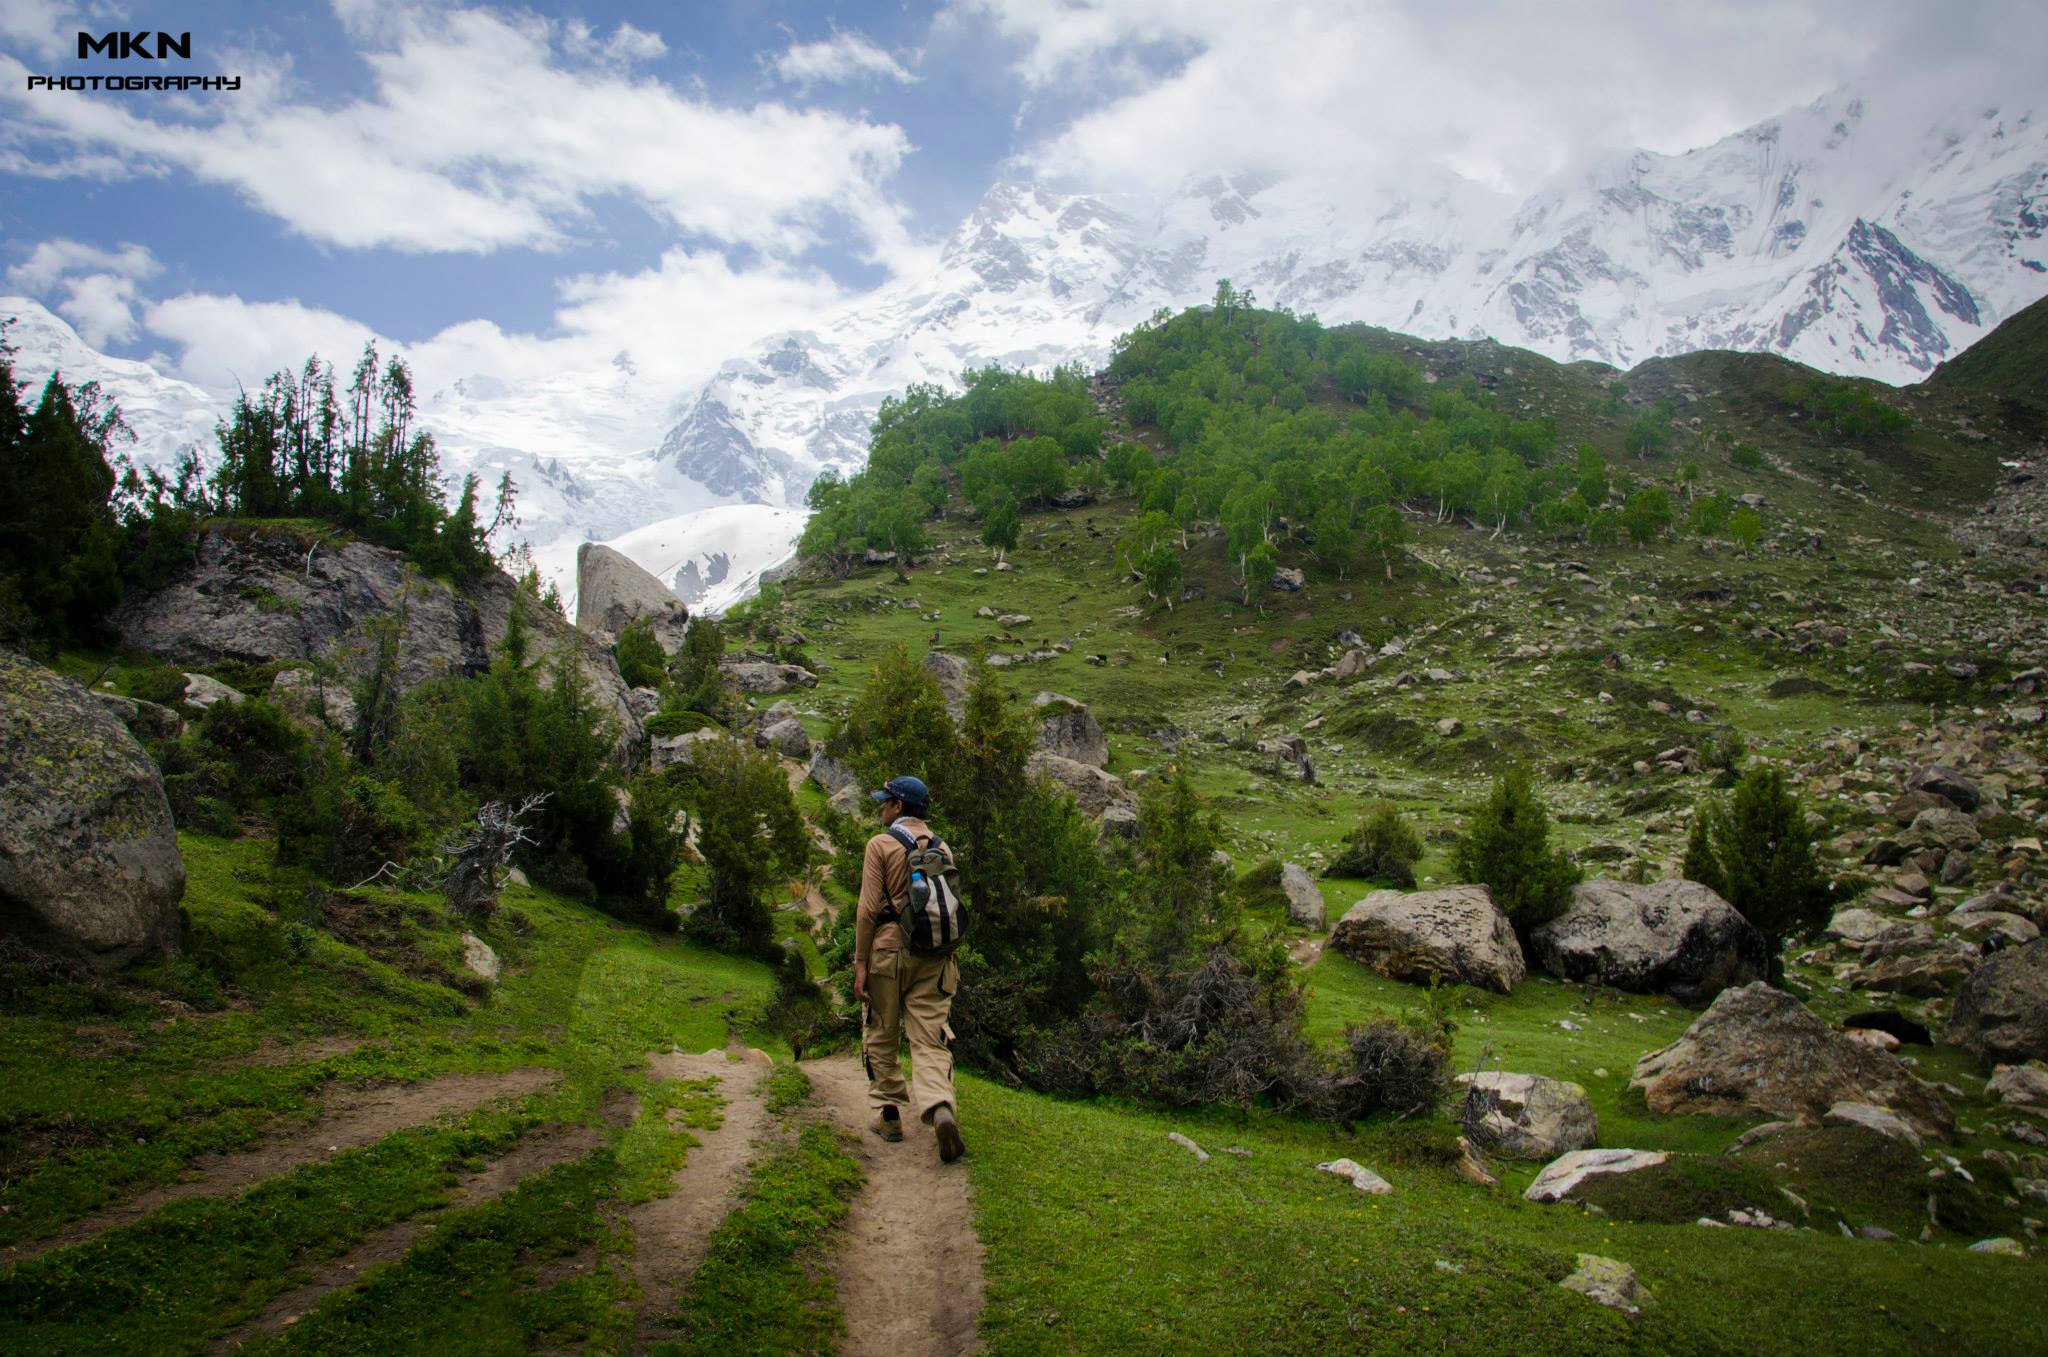 Trekker on the way to Nanga Parbat base camp